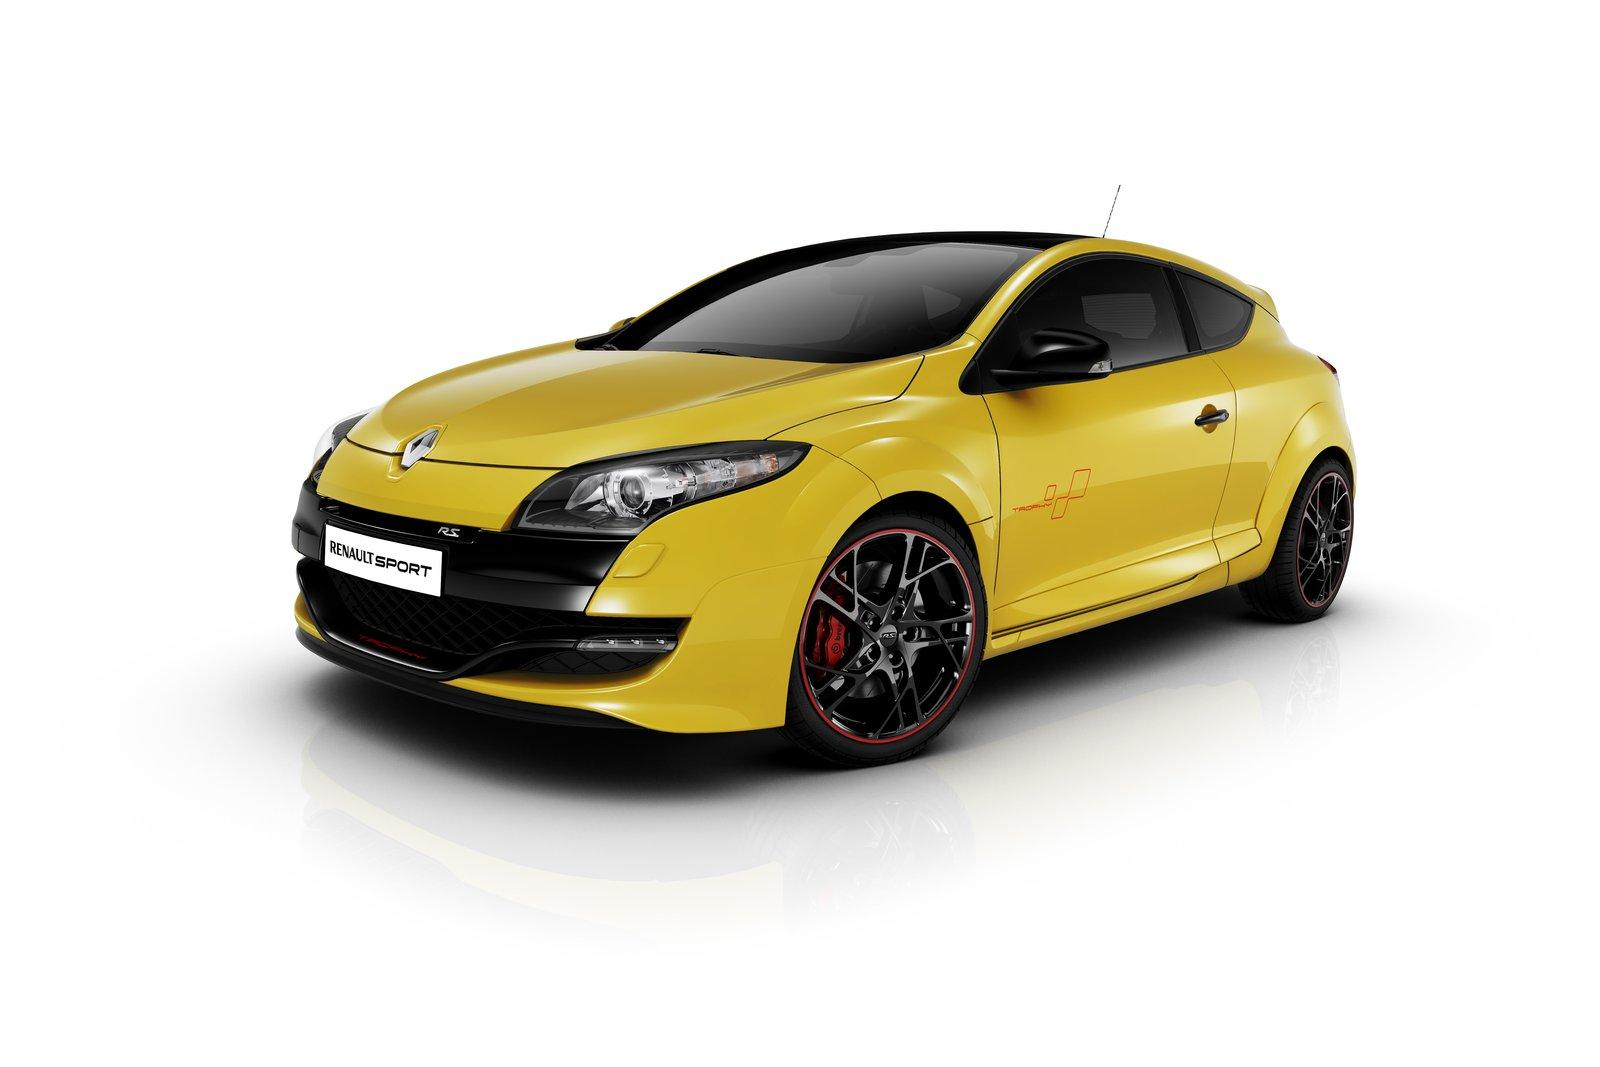 2013 Renaultsport Megane 265 Trophy K Tec Racing gives 2013 Renaultsport Megane 265 Trophy supercar like features